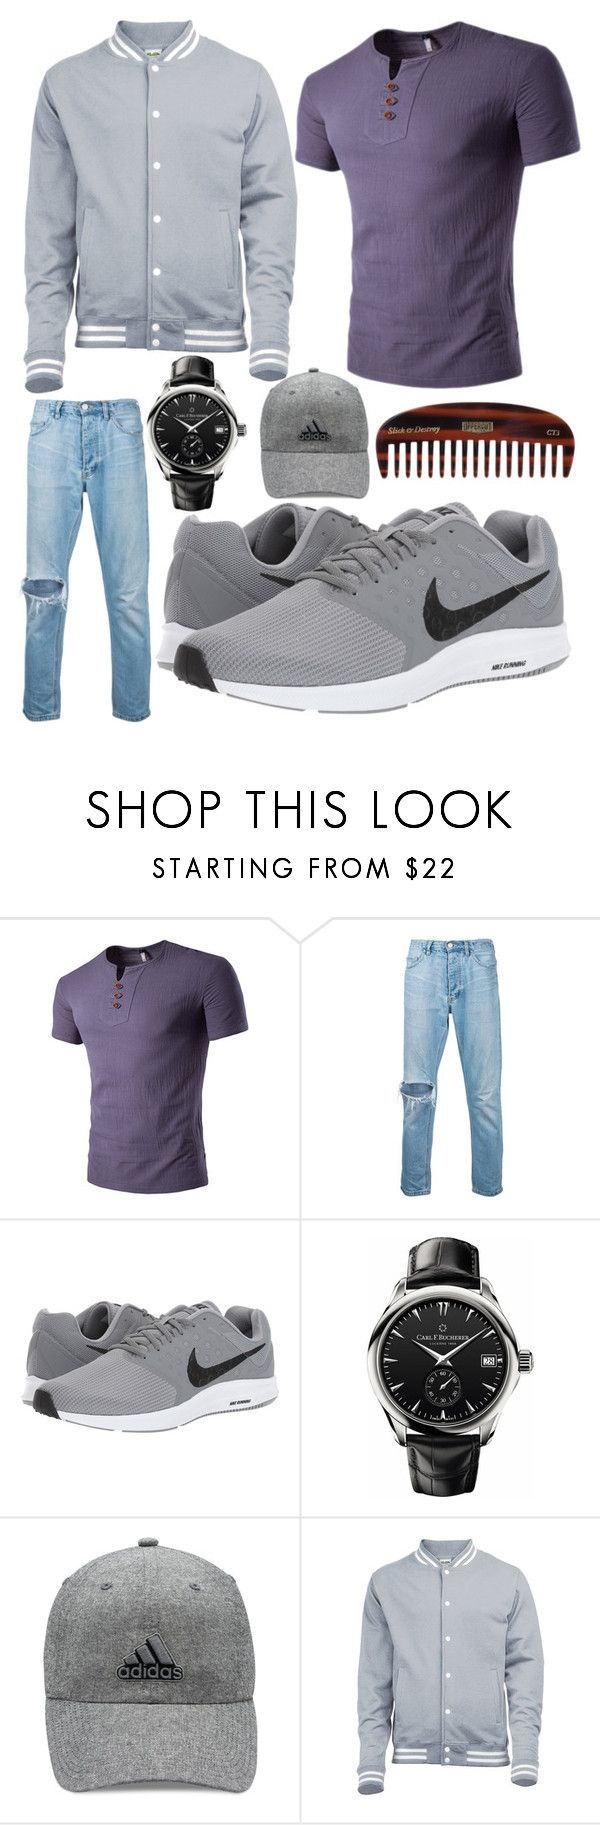 """""""derek"""" by hannah-graves ❤ liked on Polyvore featuring ExInfinitas, NIKE, Carl F. Bucherer, adidas, Uppercut, men's fashion and menswear"""